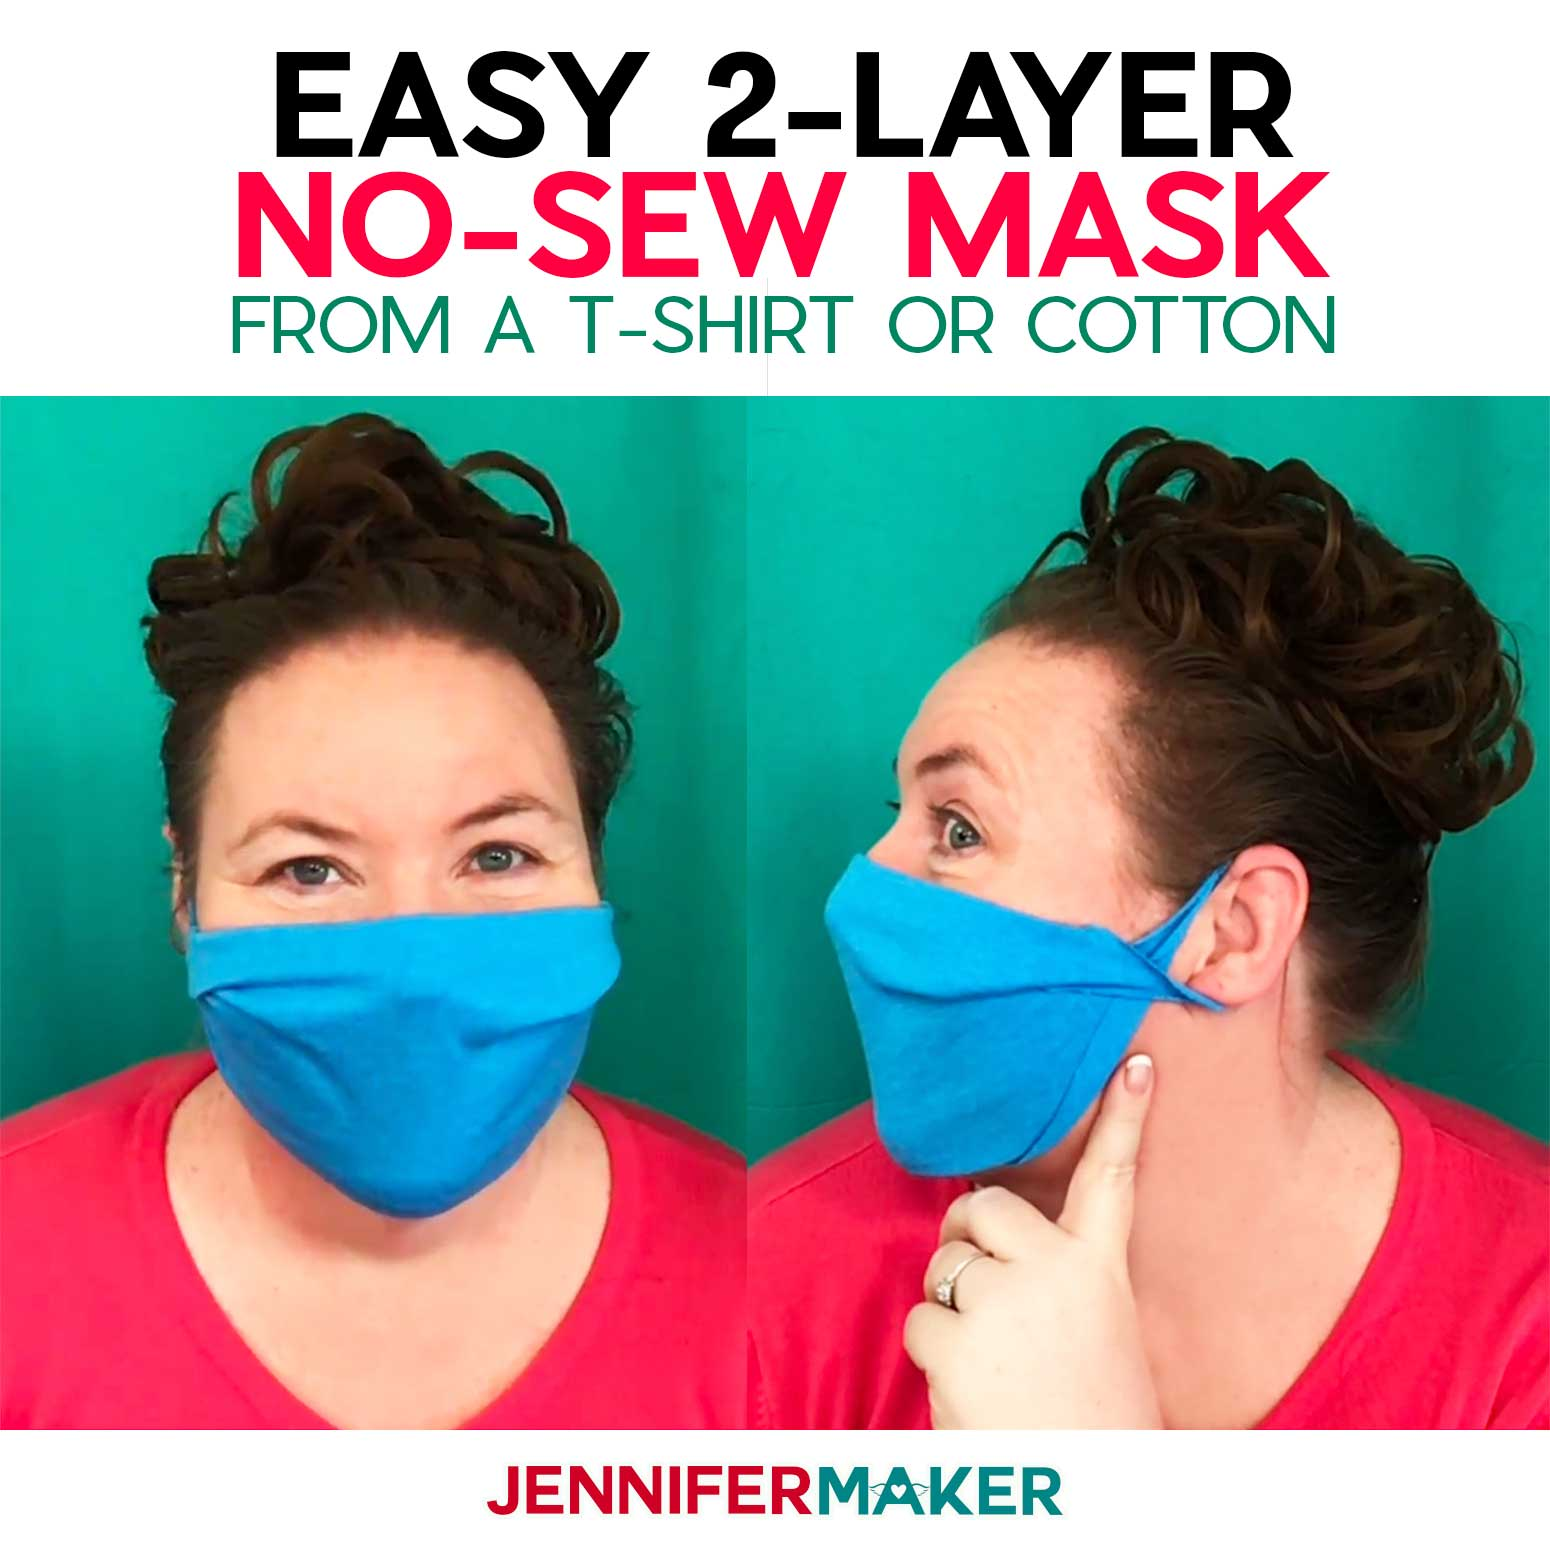 Make a no-sew face mask from a T-shirt or woven cotton without elastic or ties -- super easy and fast with free pattern and SVG cut file for a Cricut!